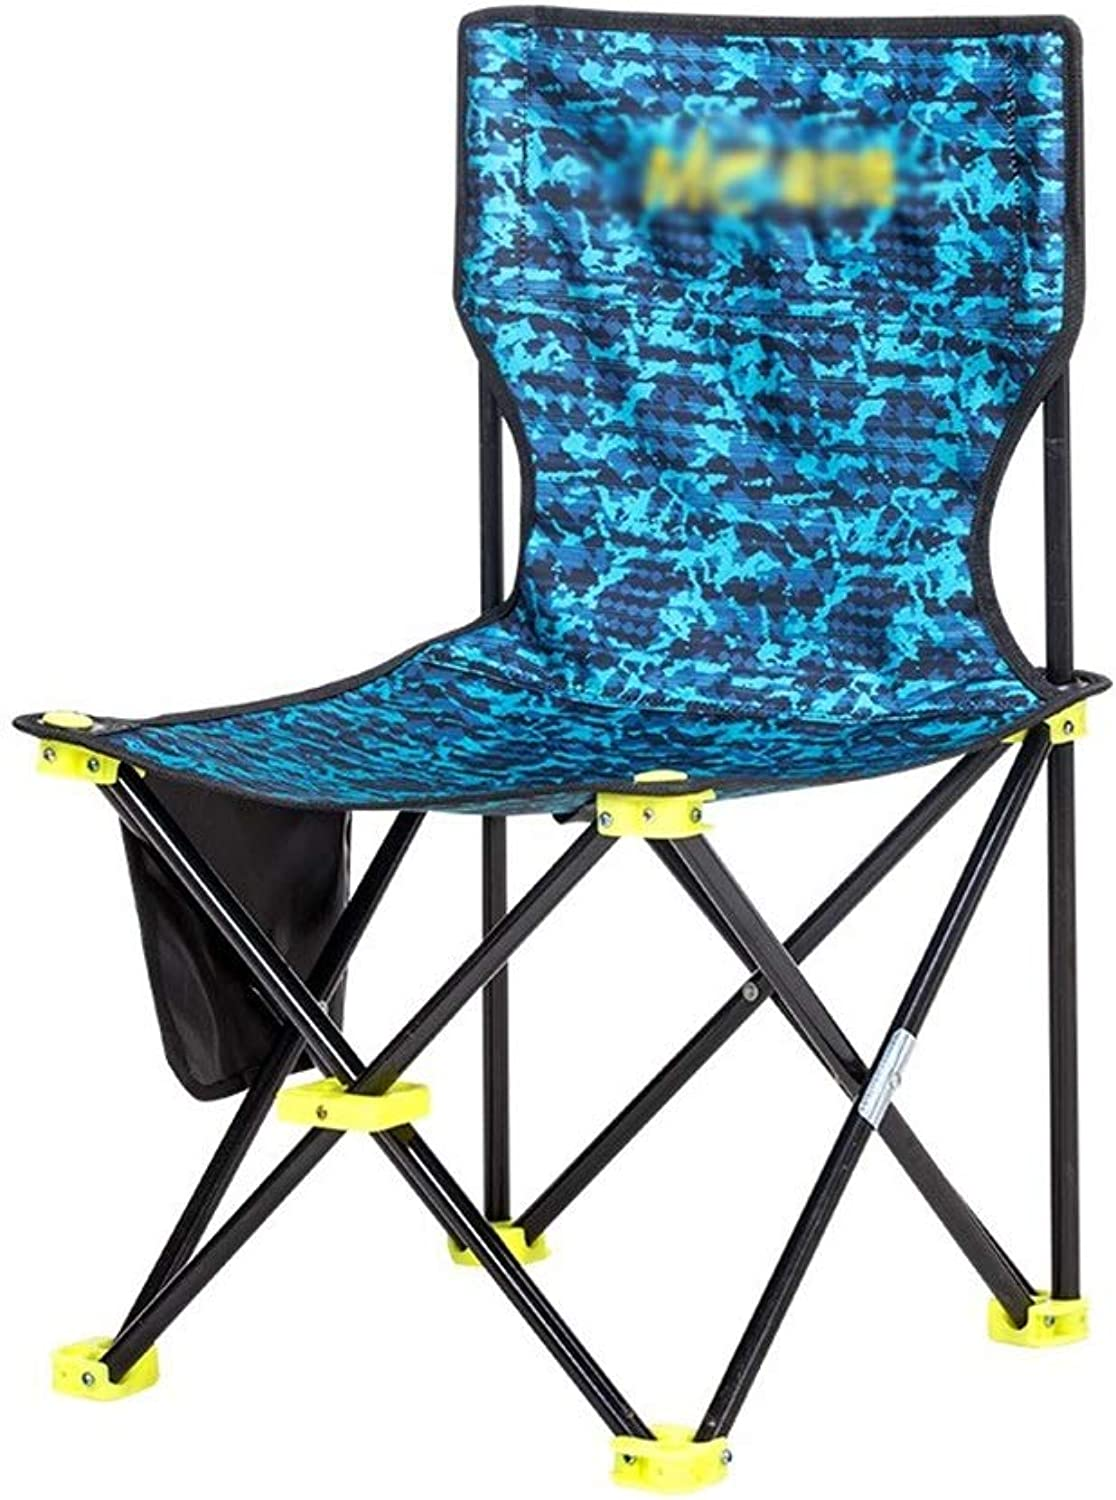 Camping Chairs, Thicken Wear Resistant Outdoor Chair Fishing Stool Adult Chair Picnic Chair Camping Chair Size  38.5  64CM